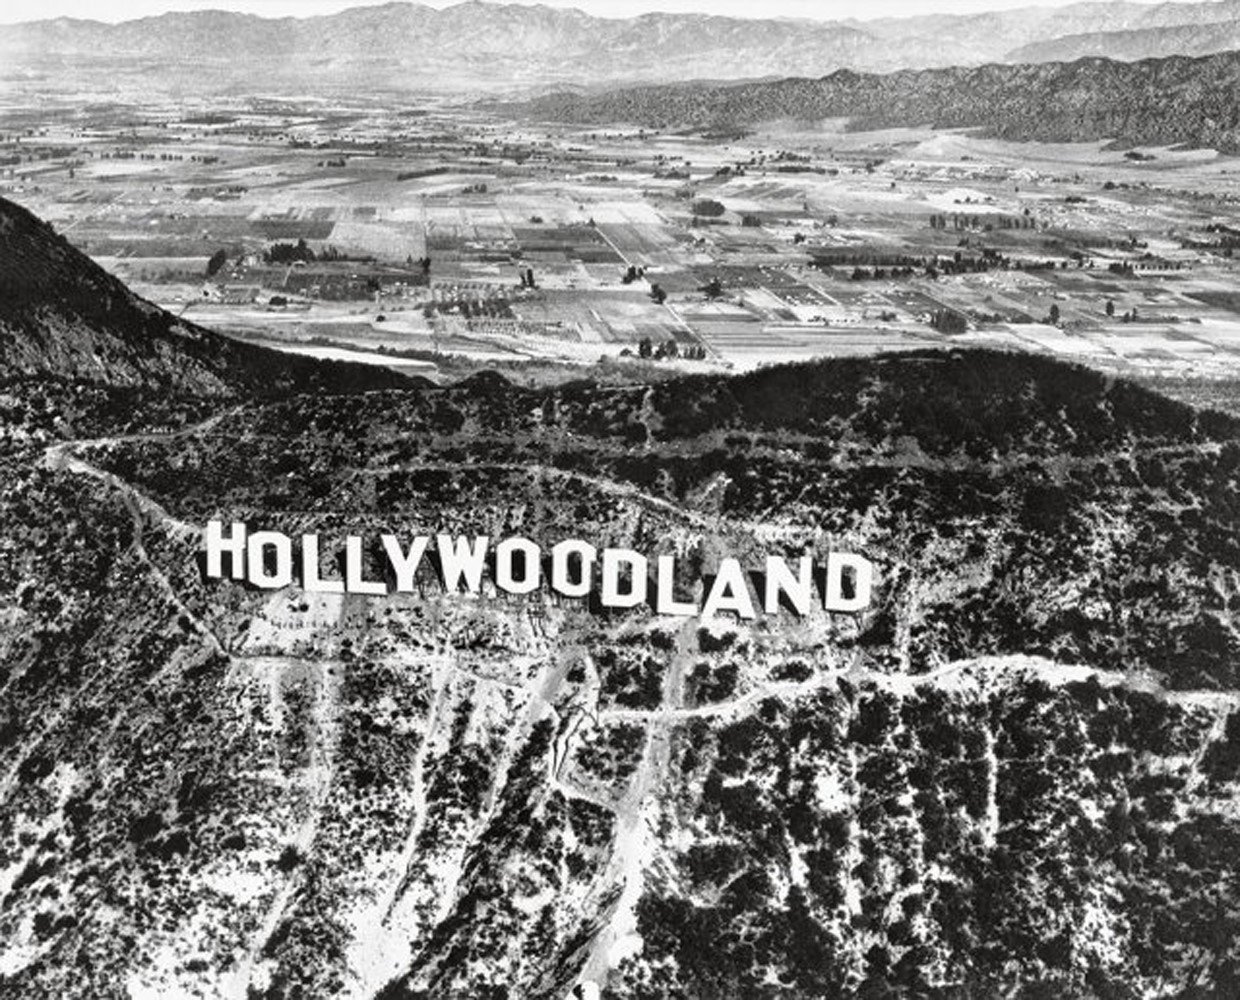 how to get up to hollywood sign